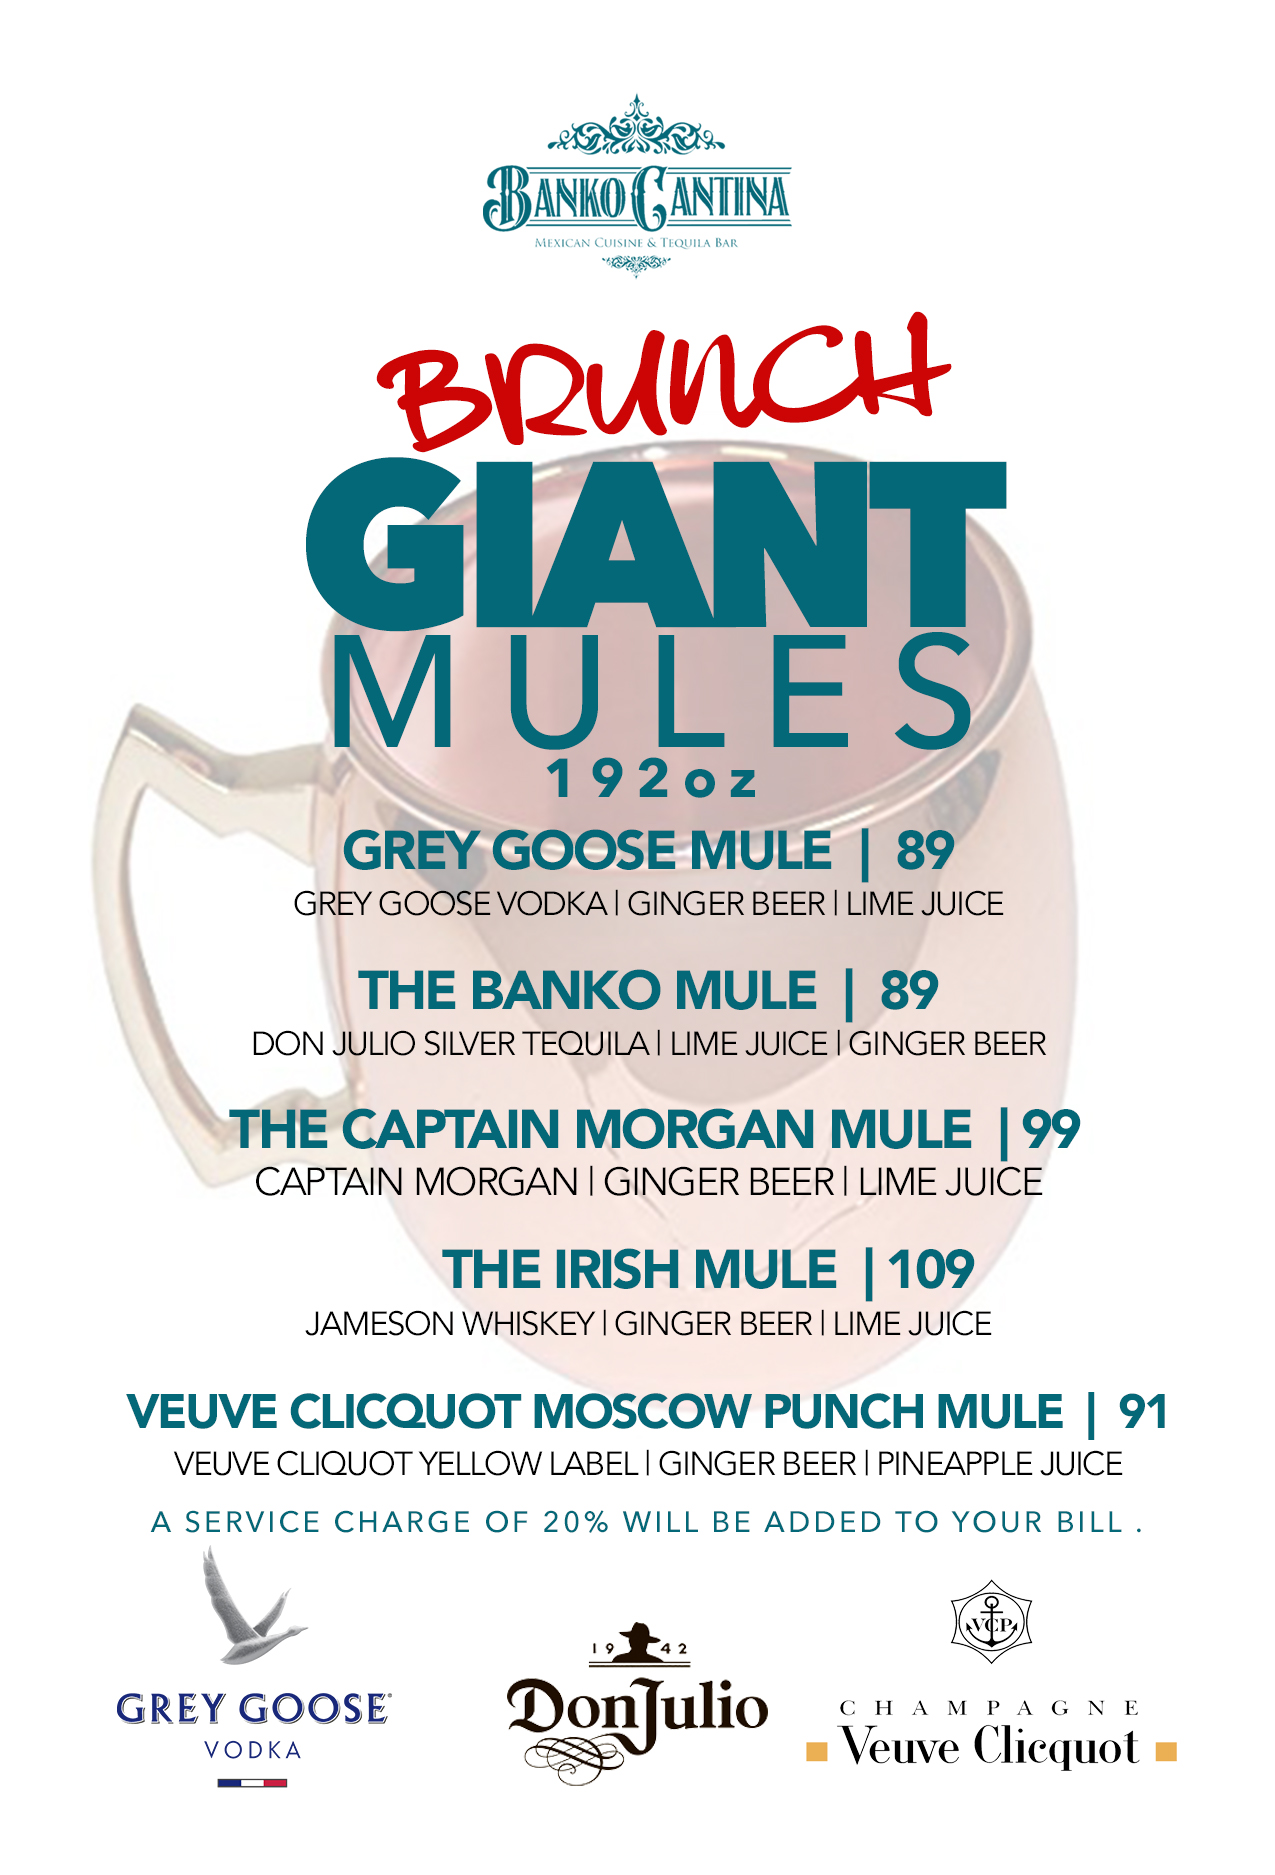 Giant Mules